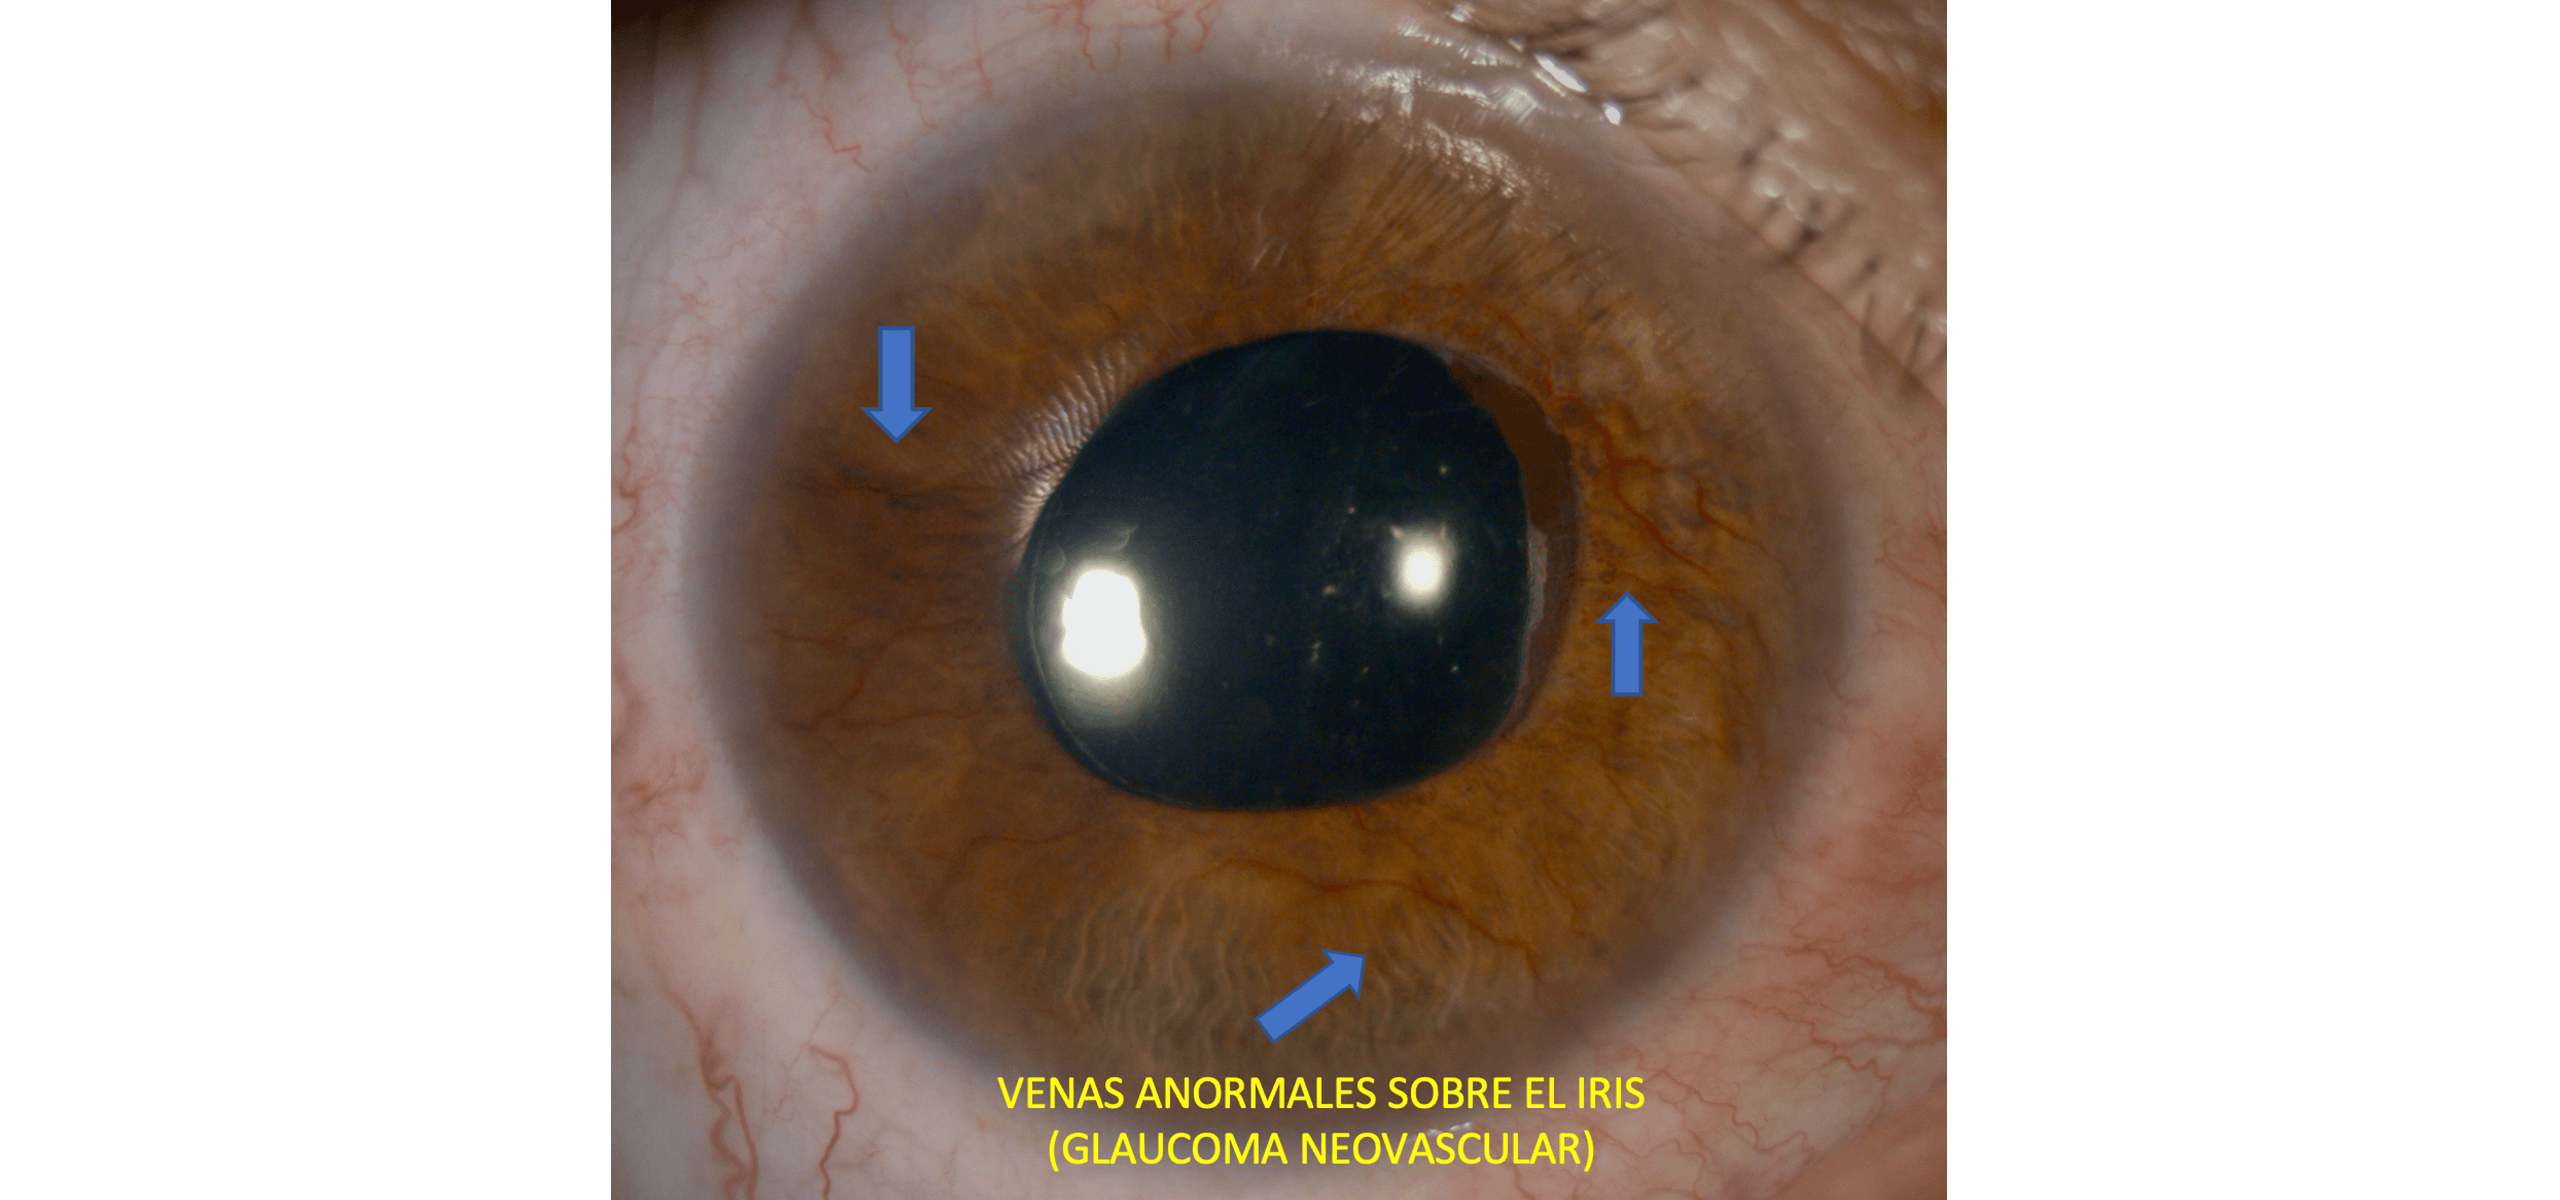 Glaucoma Neovascular